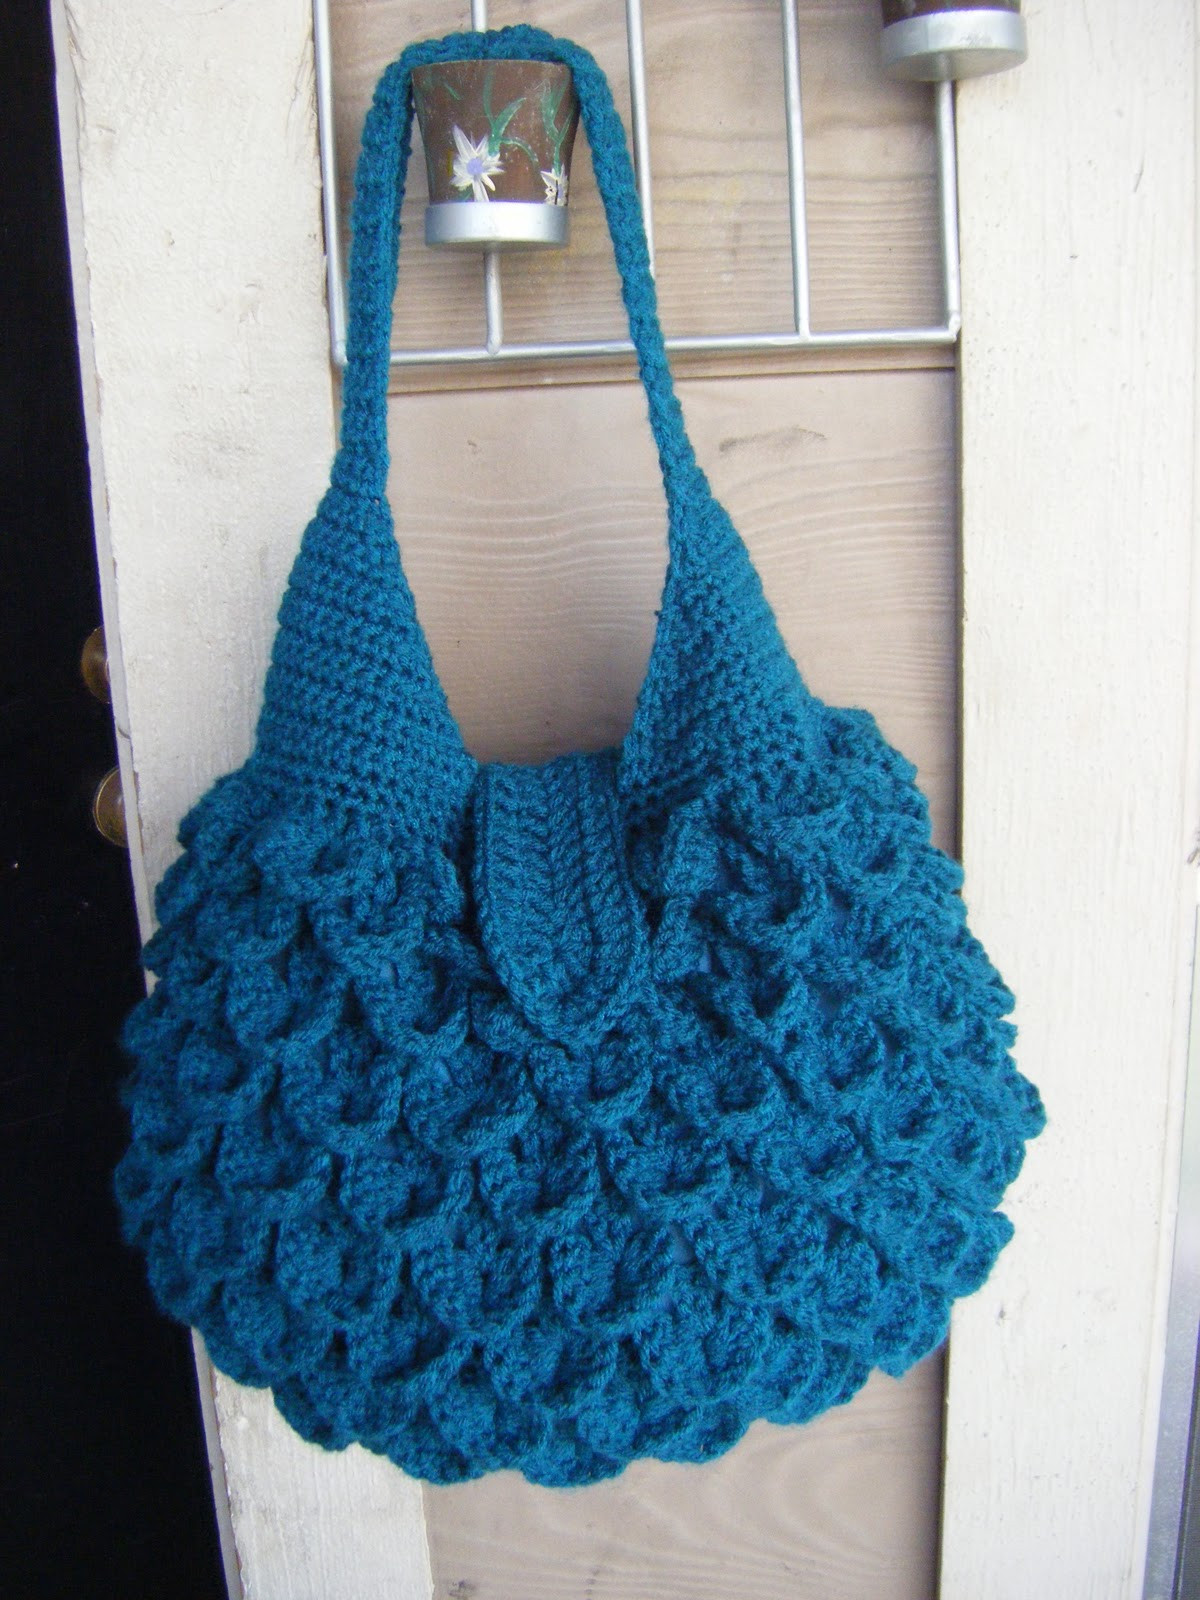 Lovely Free Crochet Purse Patterns Free Knitting and Crochet Patterns Of Marvelous 44 Ideas Free Knitting and Crochet Patterns